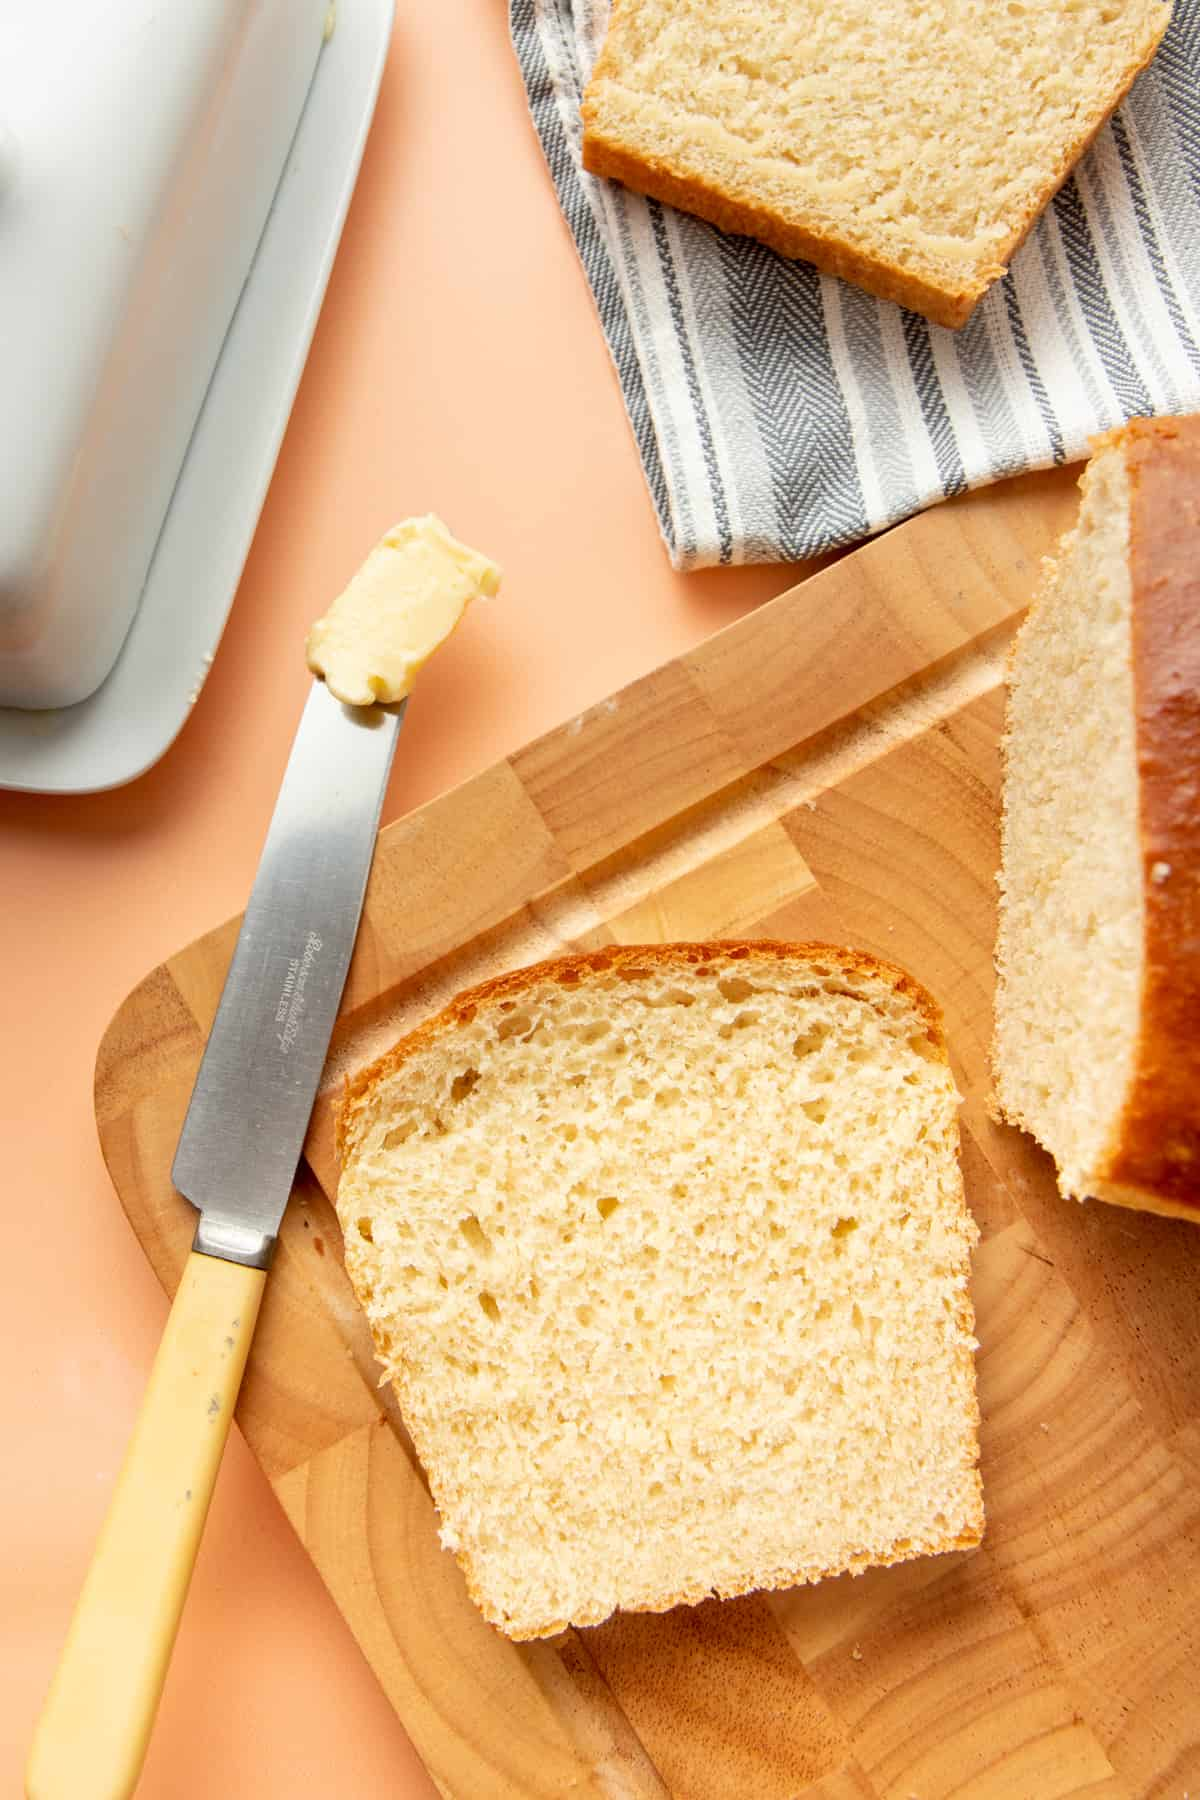 A slice of bread sits on a wooden cutting board next to a knife covered in butter.